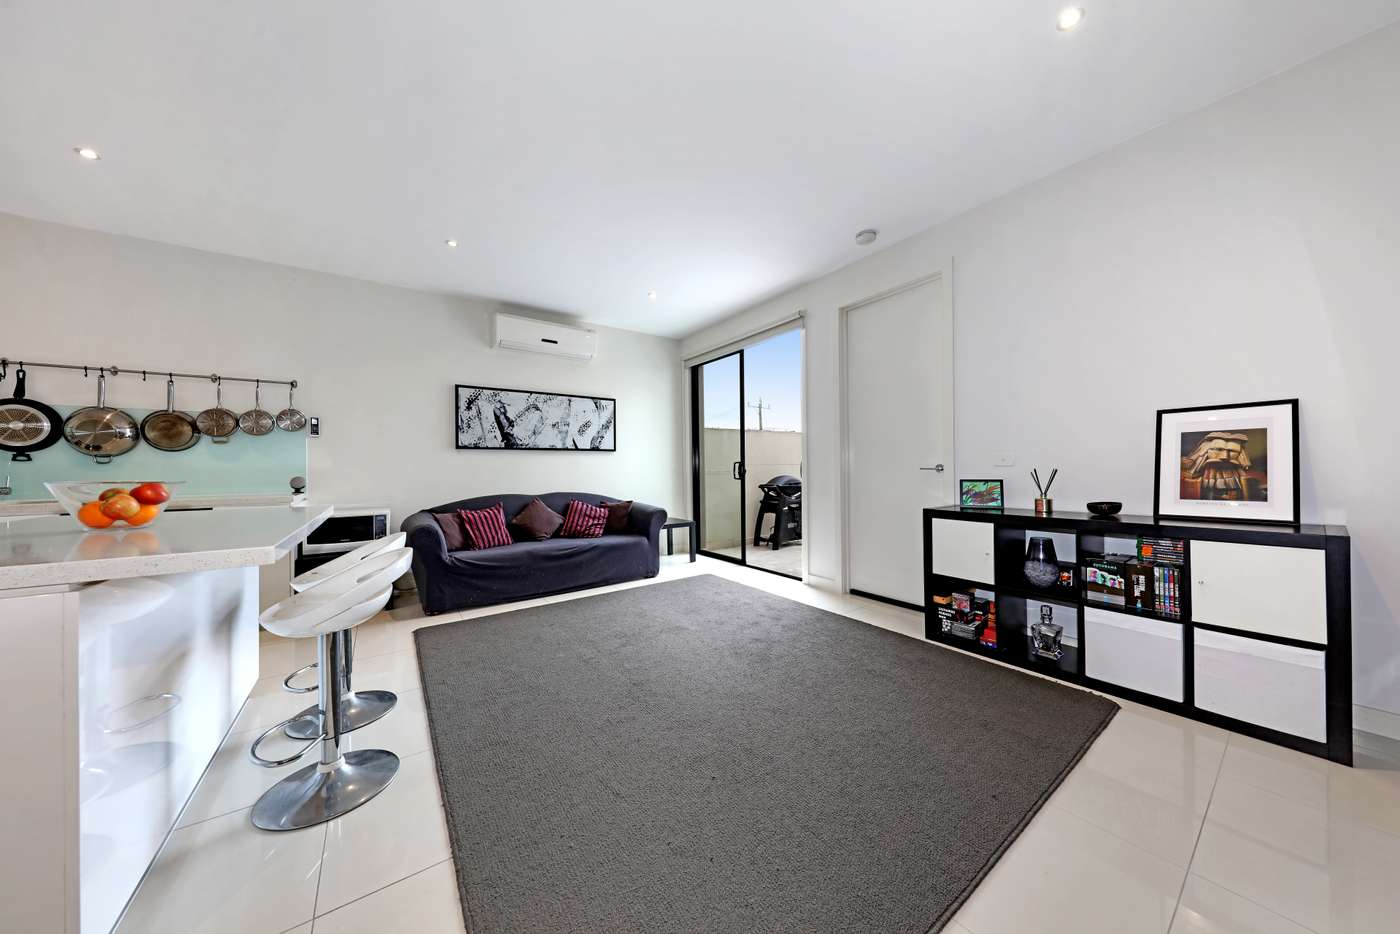 Sixth view of Homely apartment listing, 4/5-7 Clarence Street, Bentleigh East VIC 3165